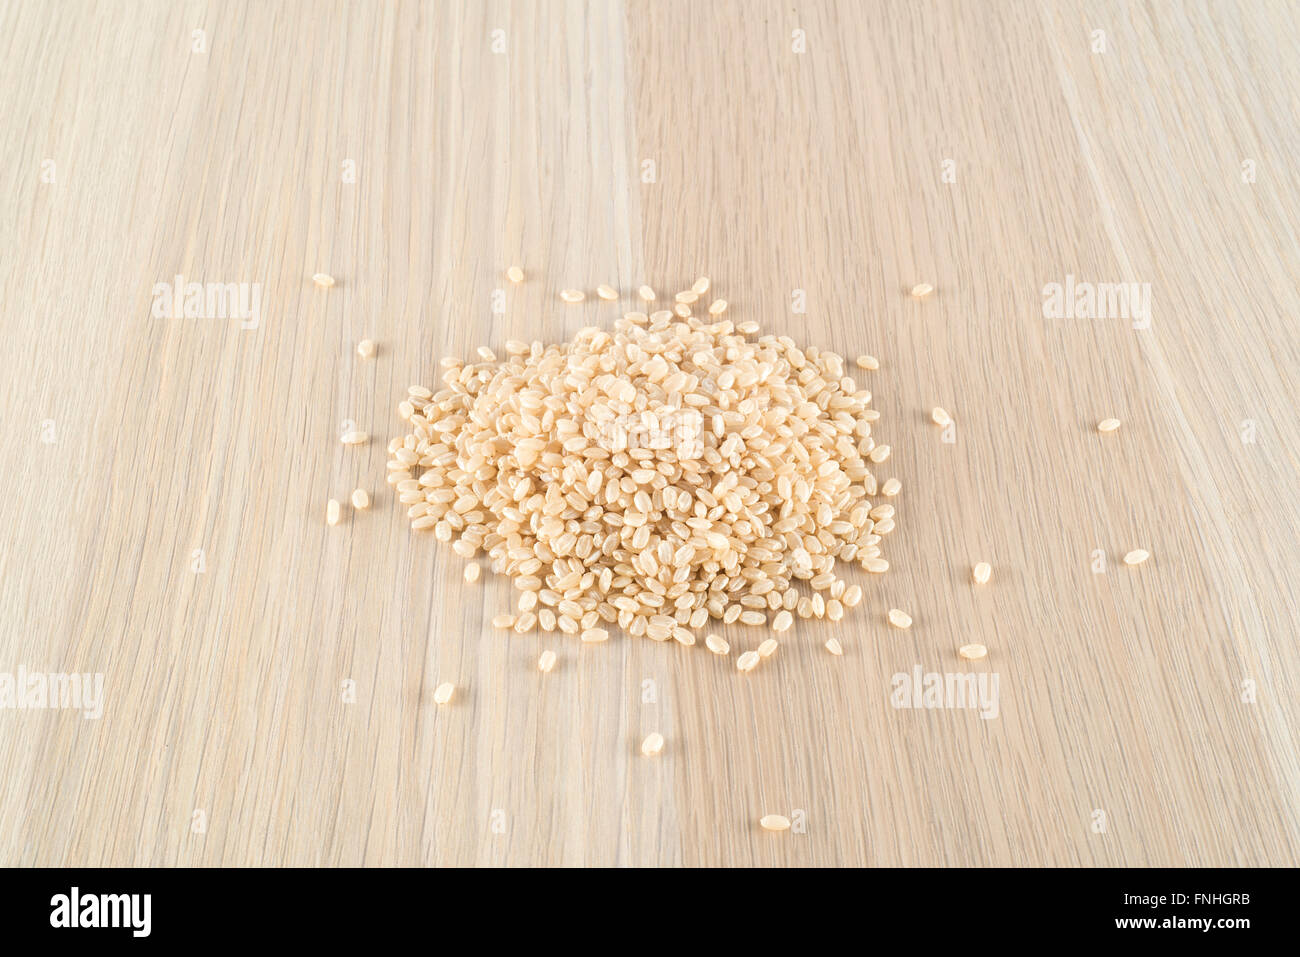 Brown rice on wooden table - Stock Image